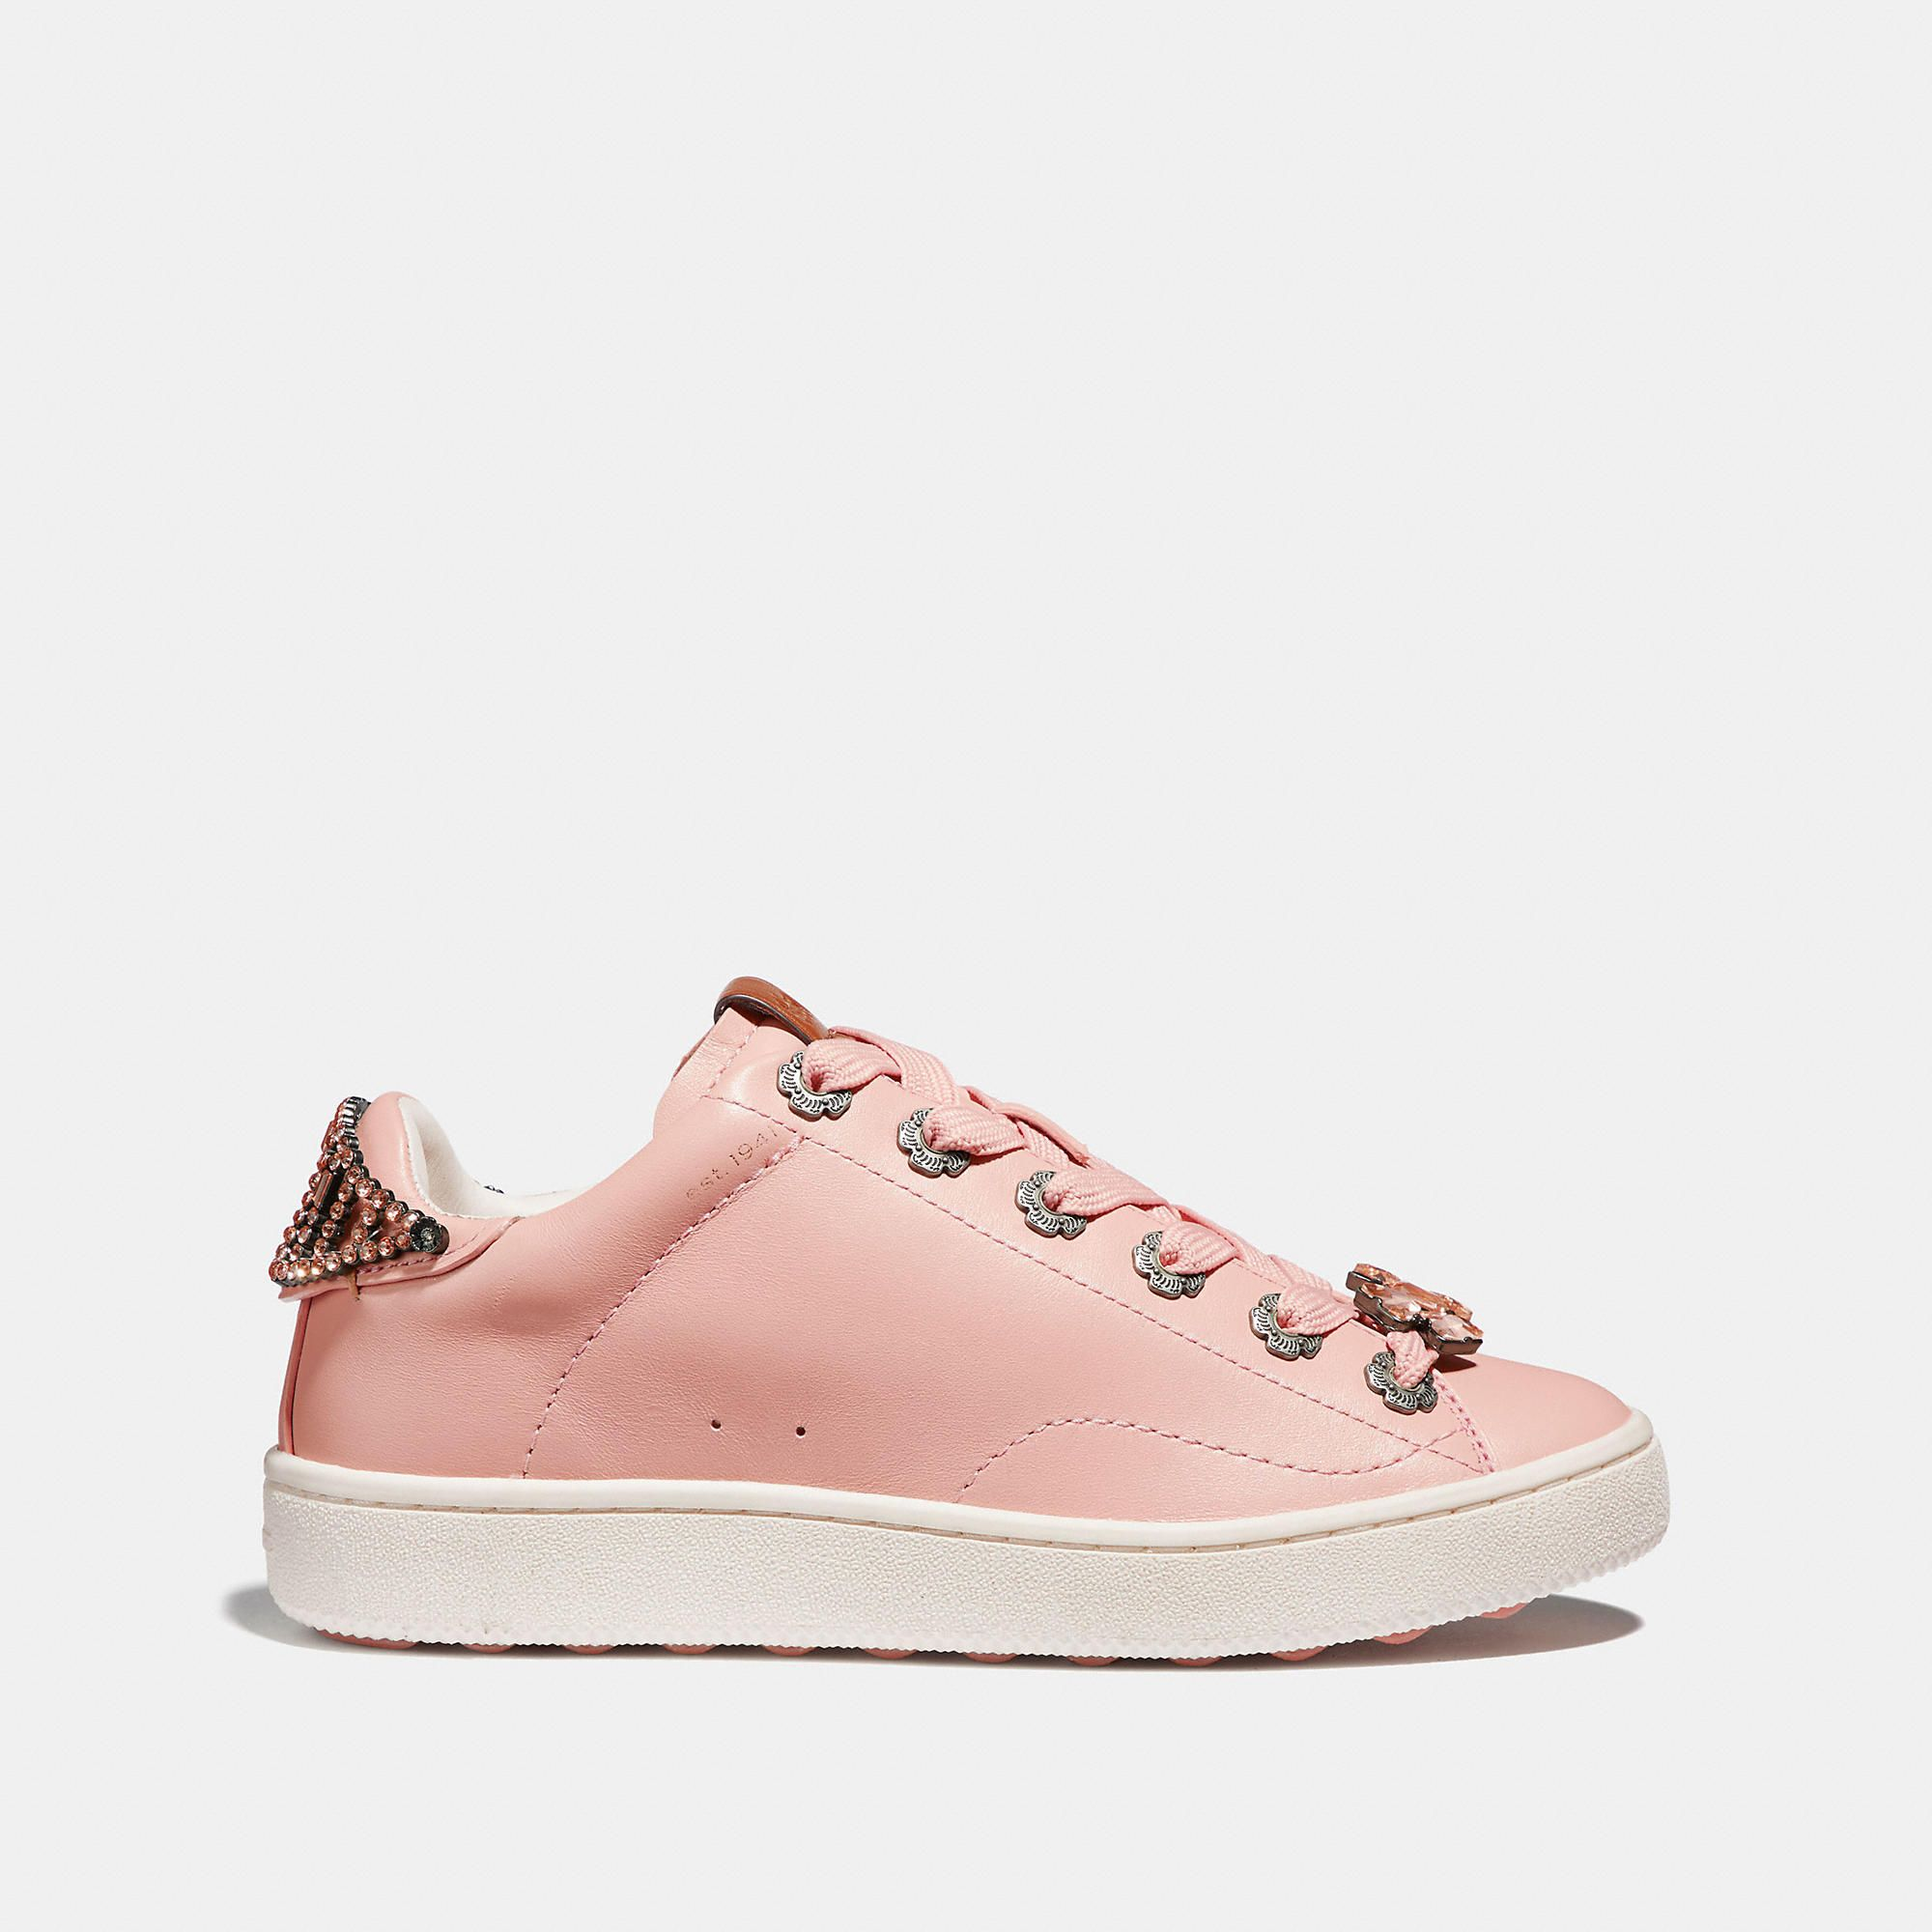 8a958f3b0fee COACH C101 With Tea Rose Eyelets And Bow - Women s Size 6.5 Tennis Shoes